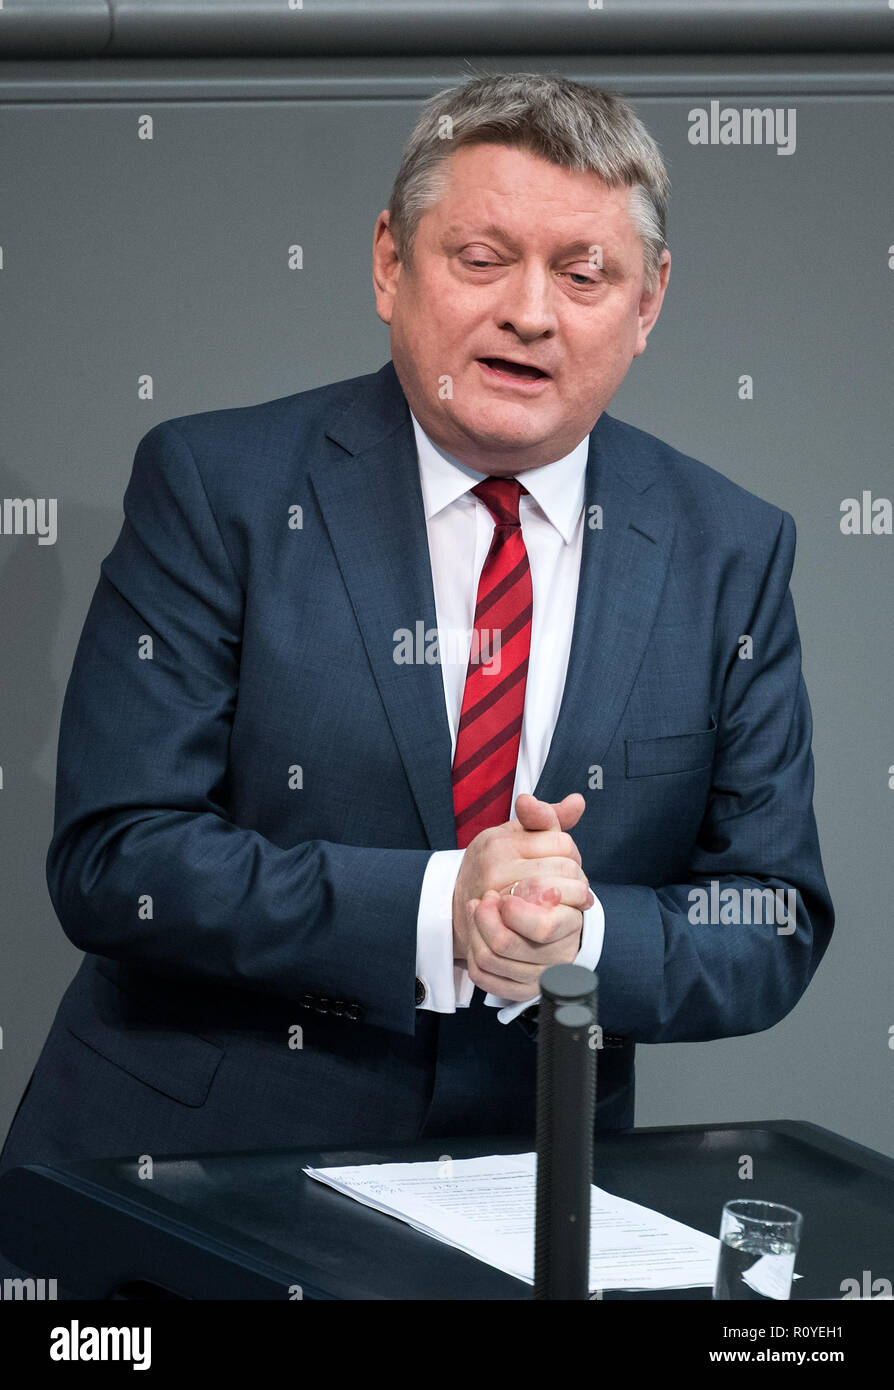 08 November 2018, Berlin: Hermann Gröhe (CDU) will speak during the plenary session of the German Bundestag. Topics of the 61st session of the 19th legislative period include the pension package introduced by the Federal Government, additional safe countries of origin, tax relief for families, changes in asylum law, accelerated traffic planning and a current hour on the INF (Intermediate Range Nuclear Forces) nuclear disarmament treaty. Photo: Bernd von Jutrczenka/dpa - Stock Image